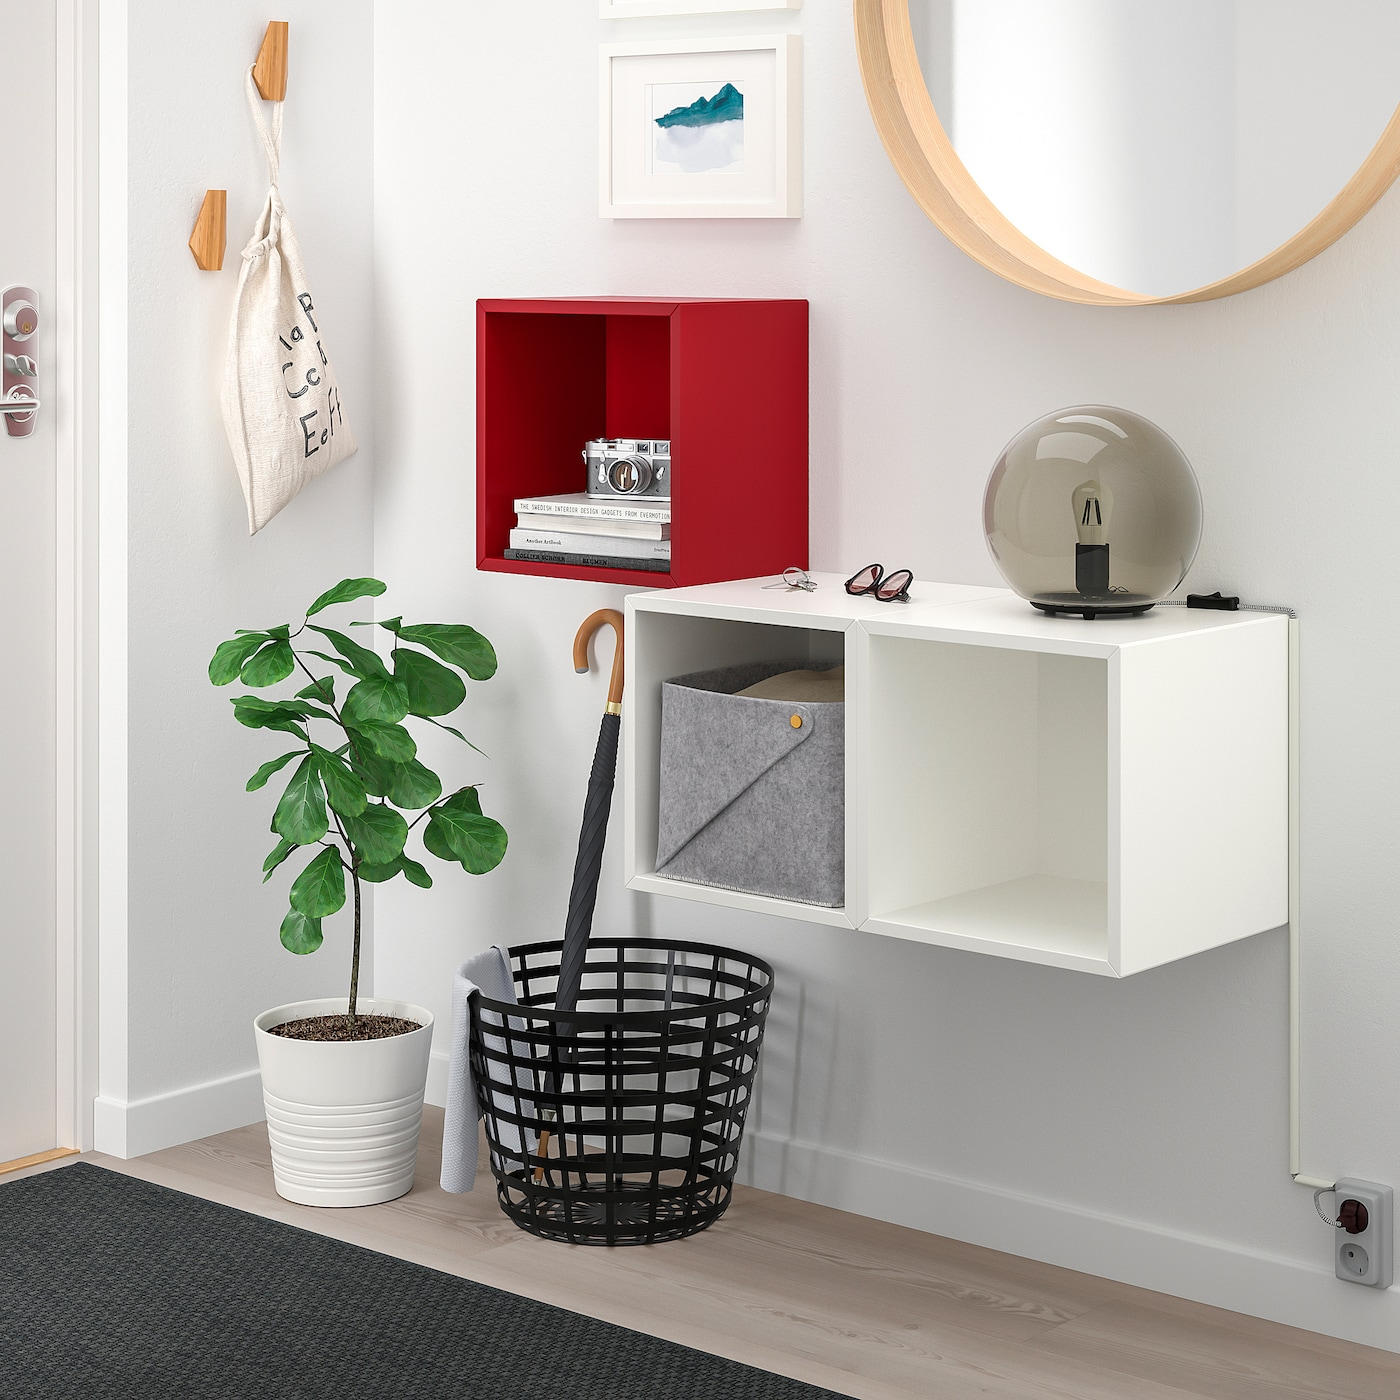 EKET Wall-mounted cabinet combination, red/white, 105x35x70 cm